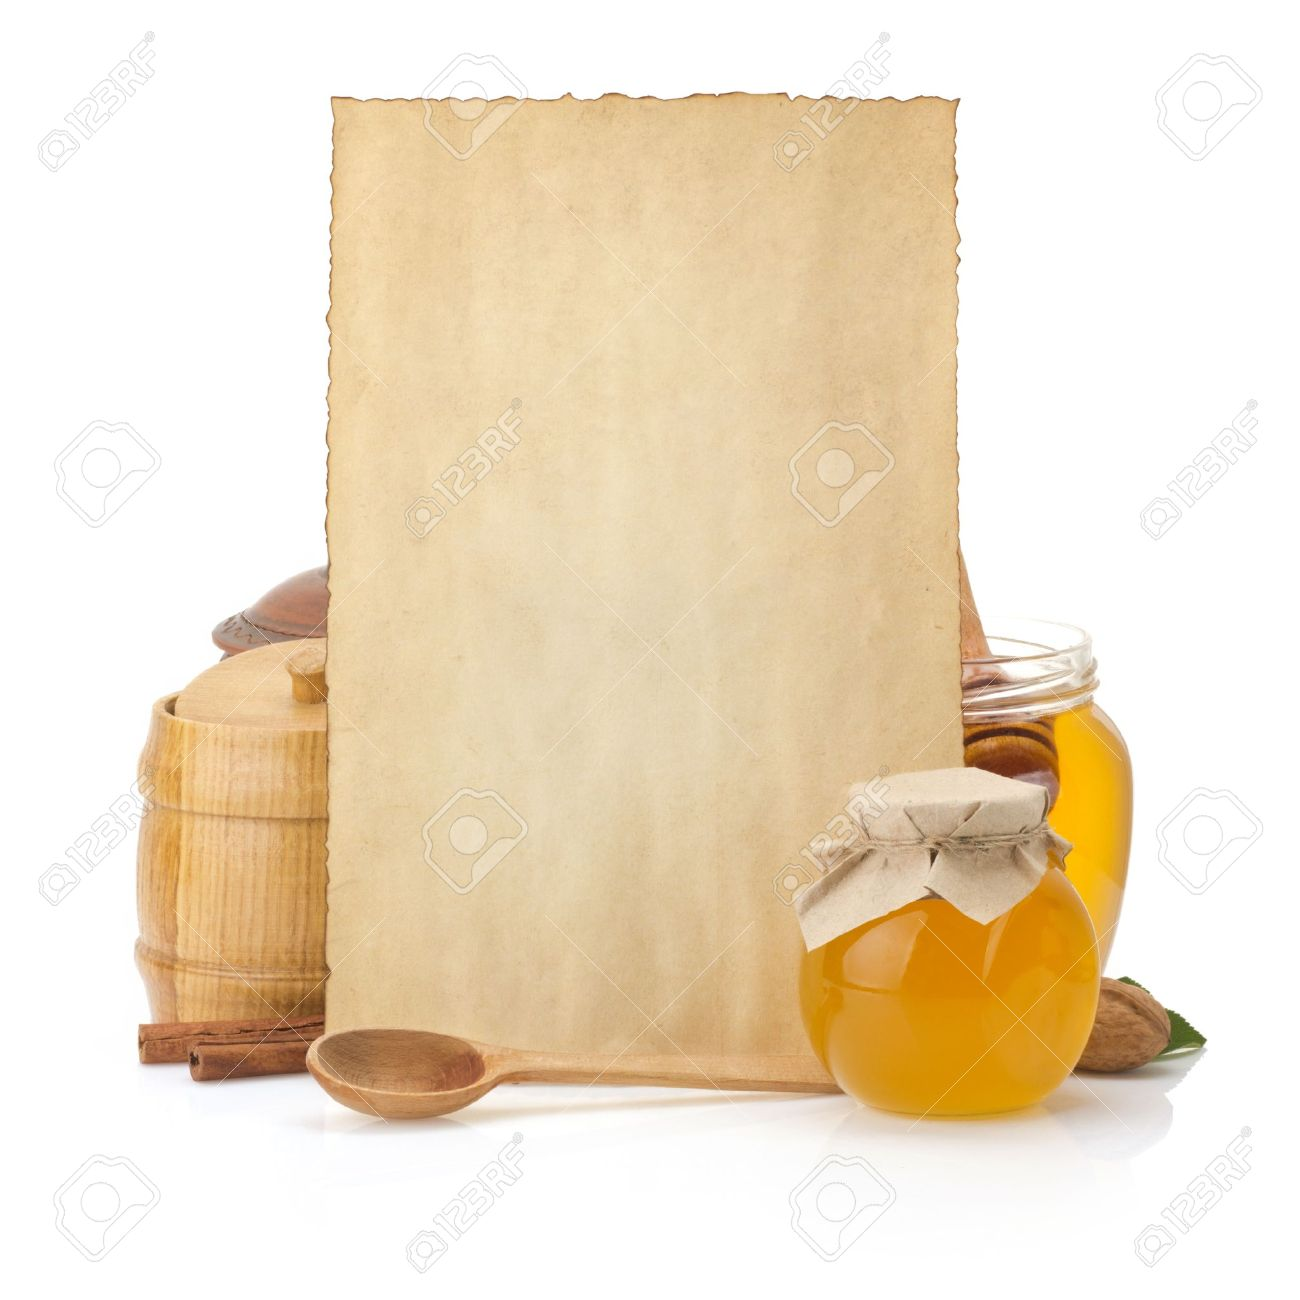 cooking recipes background and jar full of honey on white - 19575908